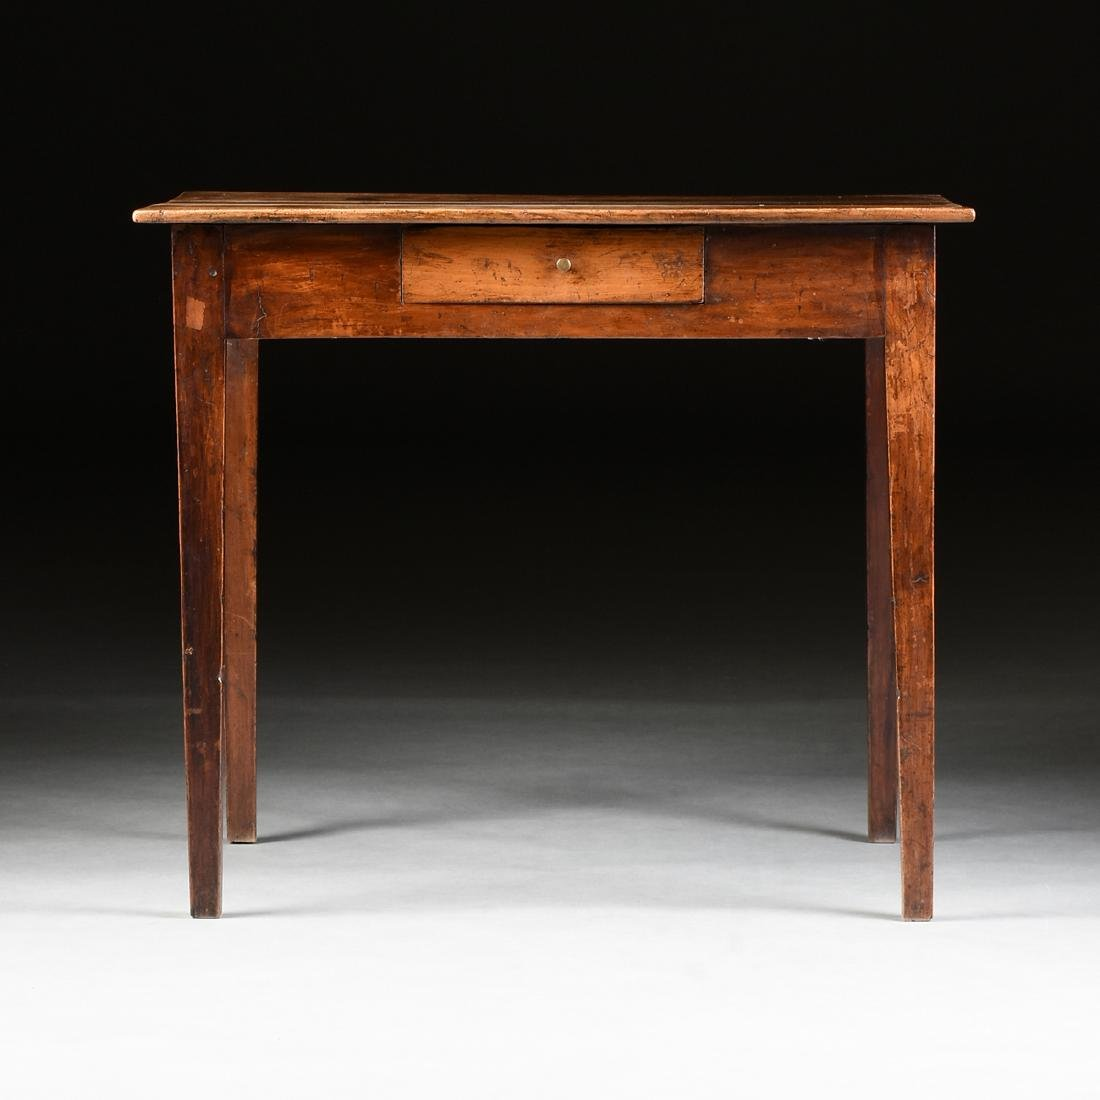 AN VERNACULAR FRUITWOOD KITCHEN TABLE, POSSIBLY